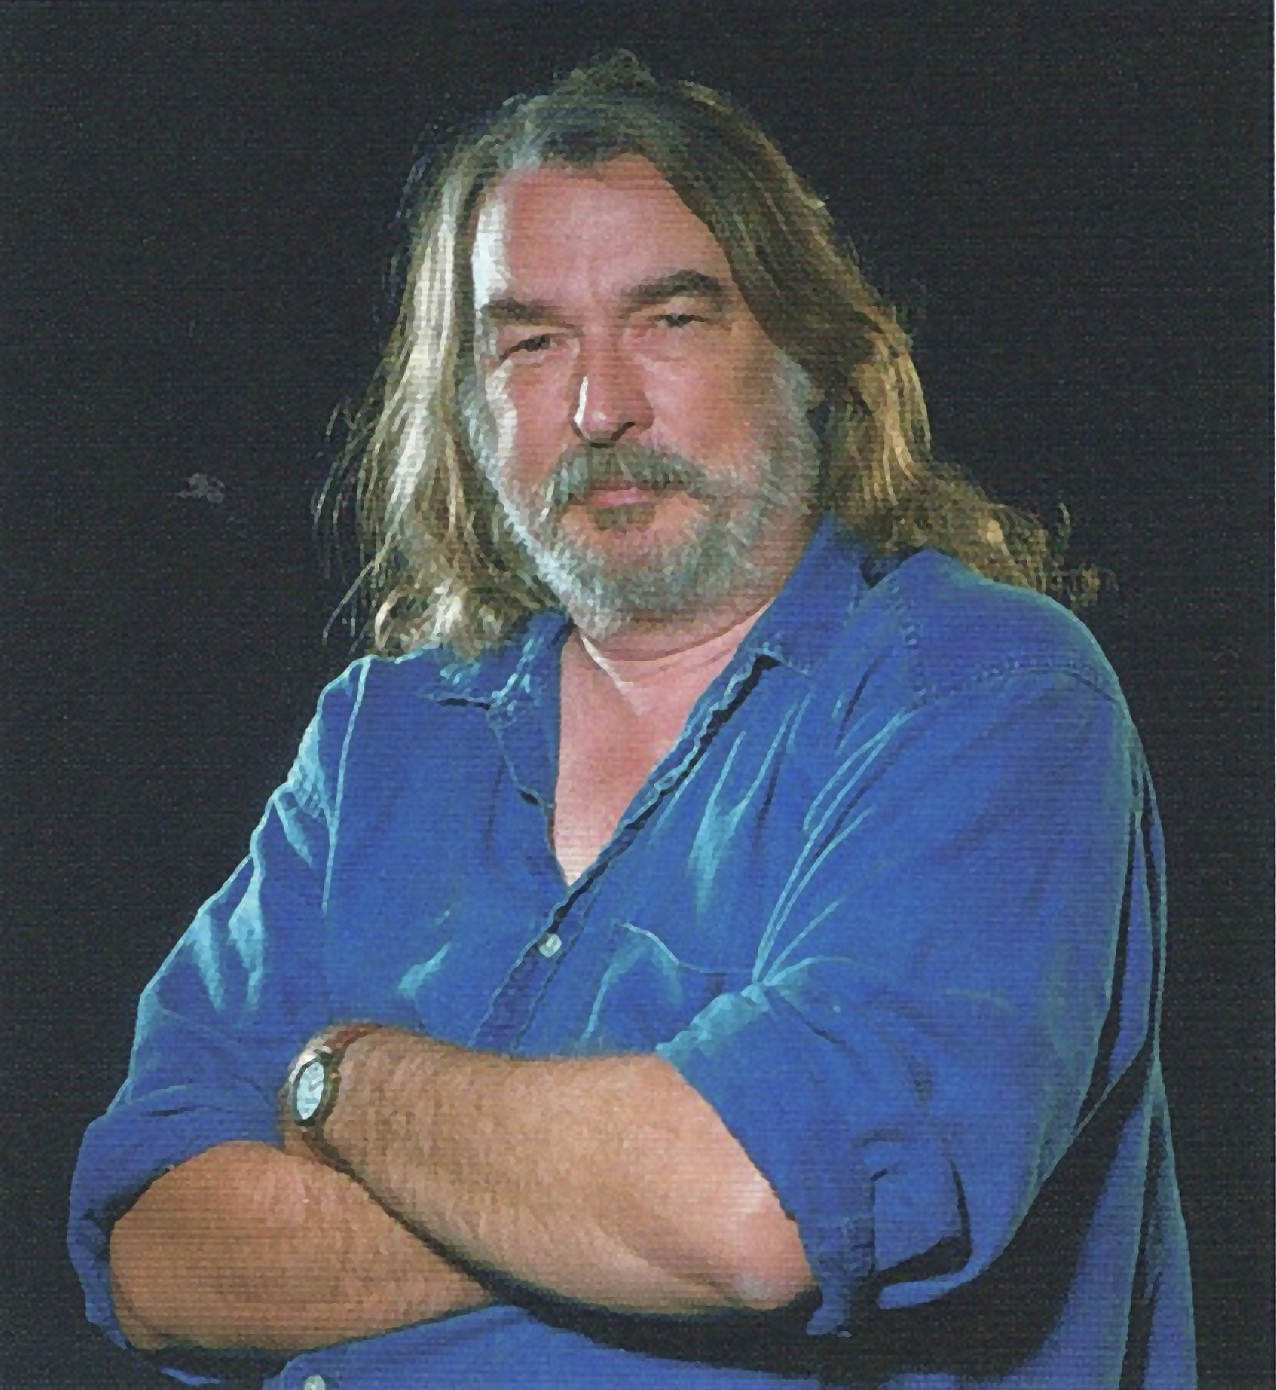 File:Star War editor Paul Martin Smith.jpg